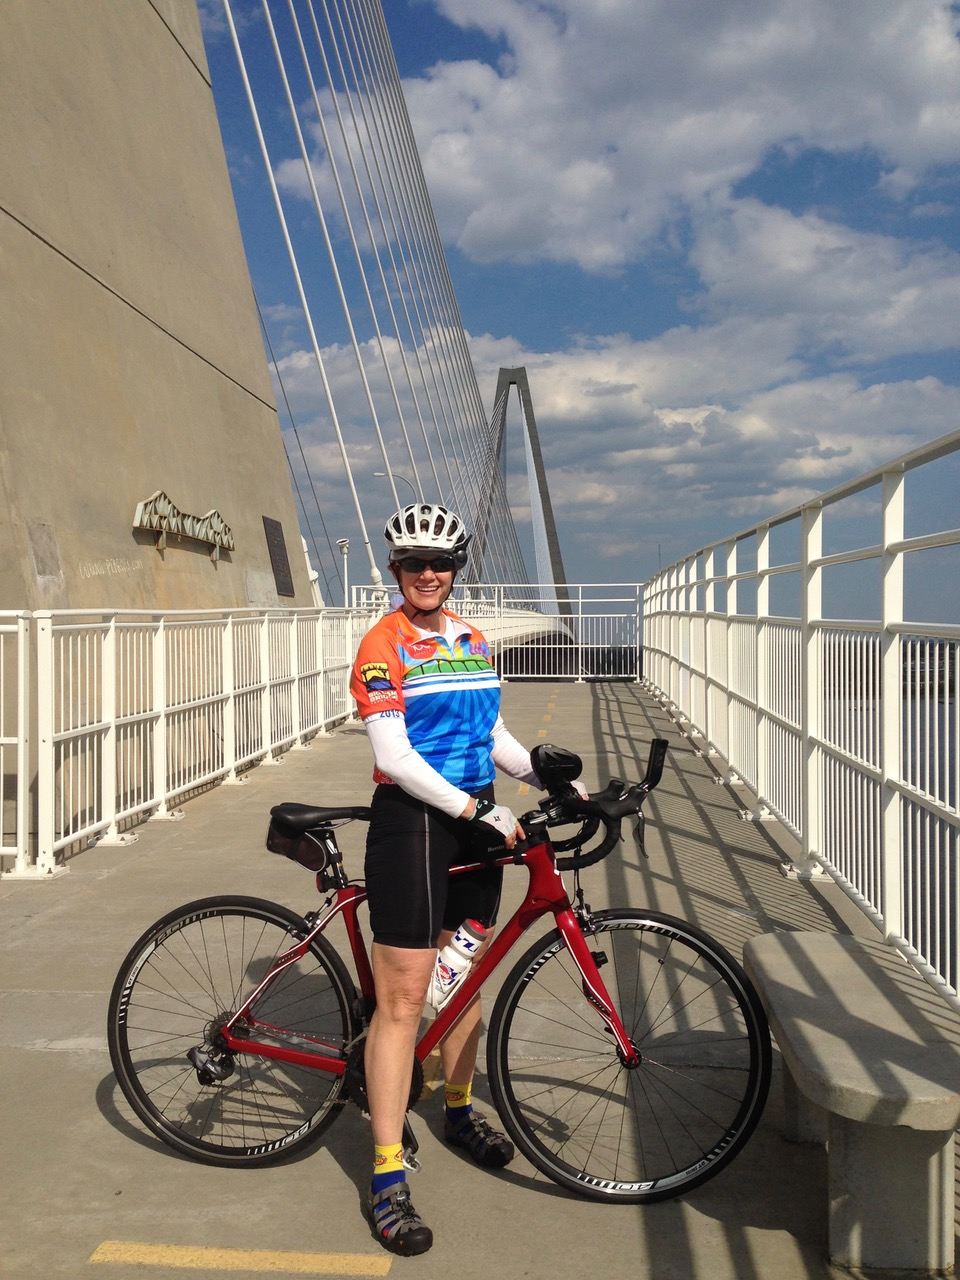 Peggy stands on Ravenel Bridge in Charleston, South Carolina, a cable-stayed bridge spanning 2.7 miles.